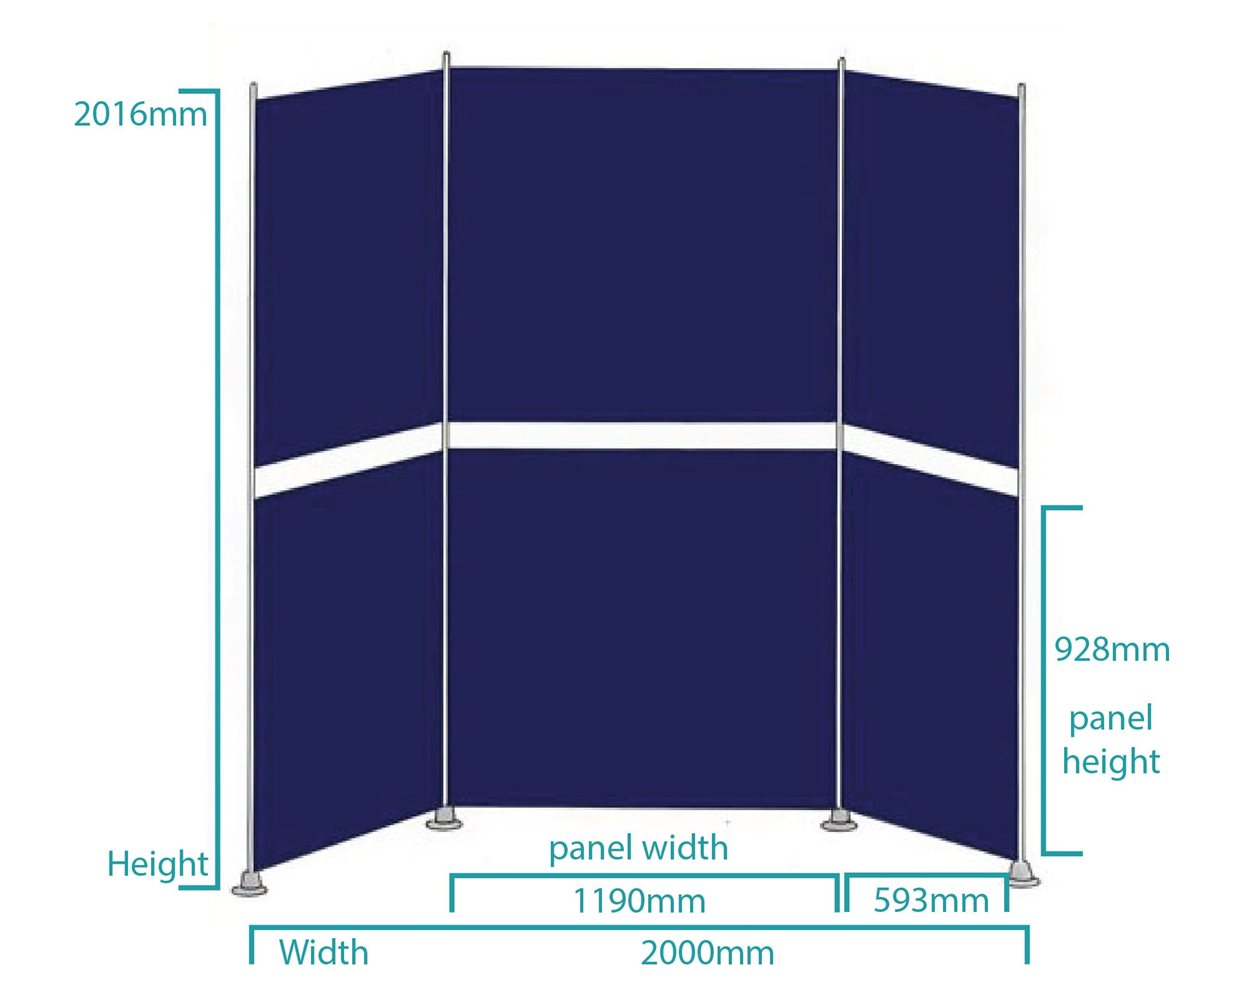 Multiscreen Display Board Kits Display Board 6 panels kit 3 Dimensions